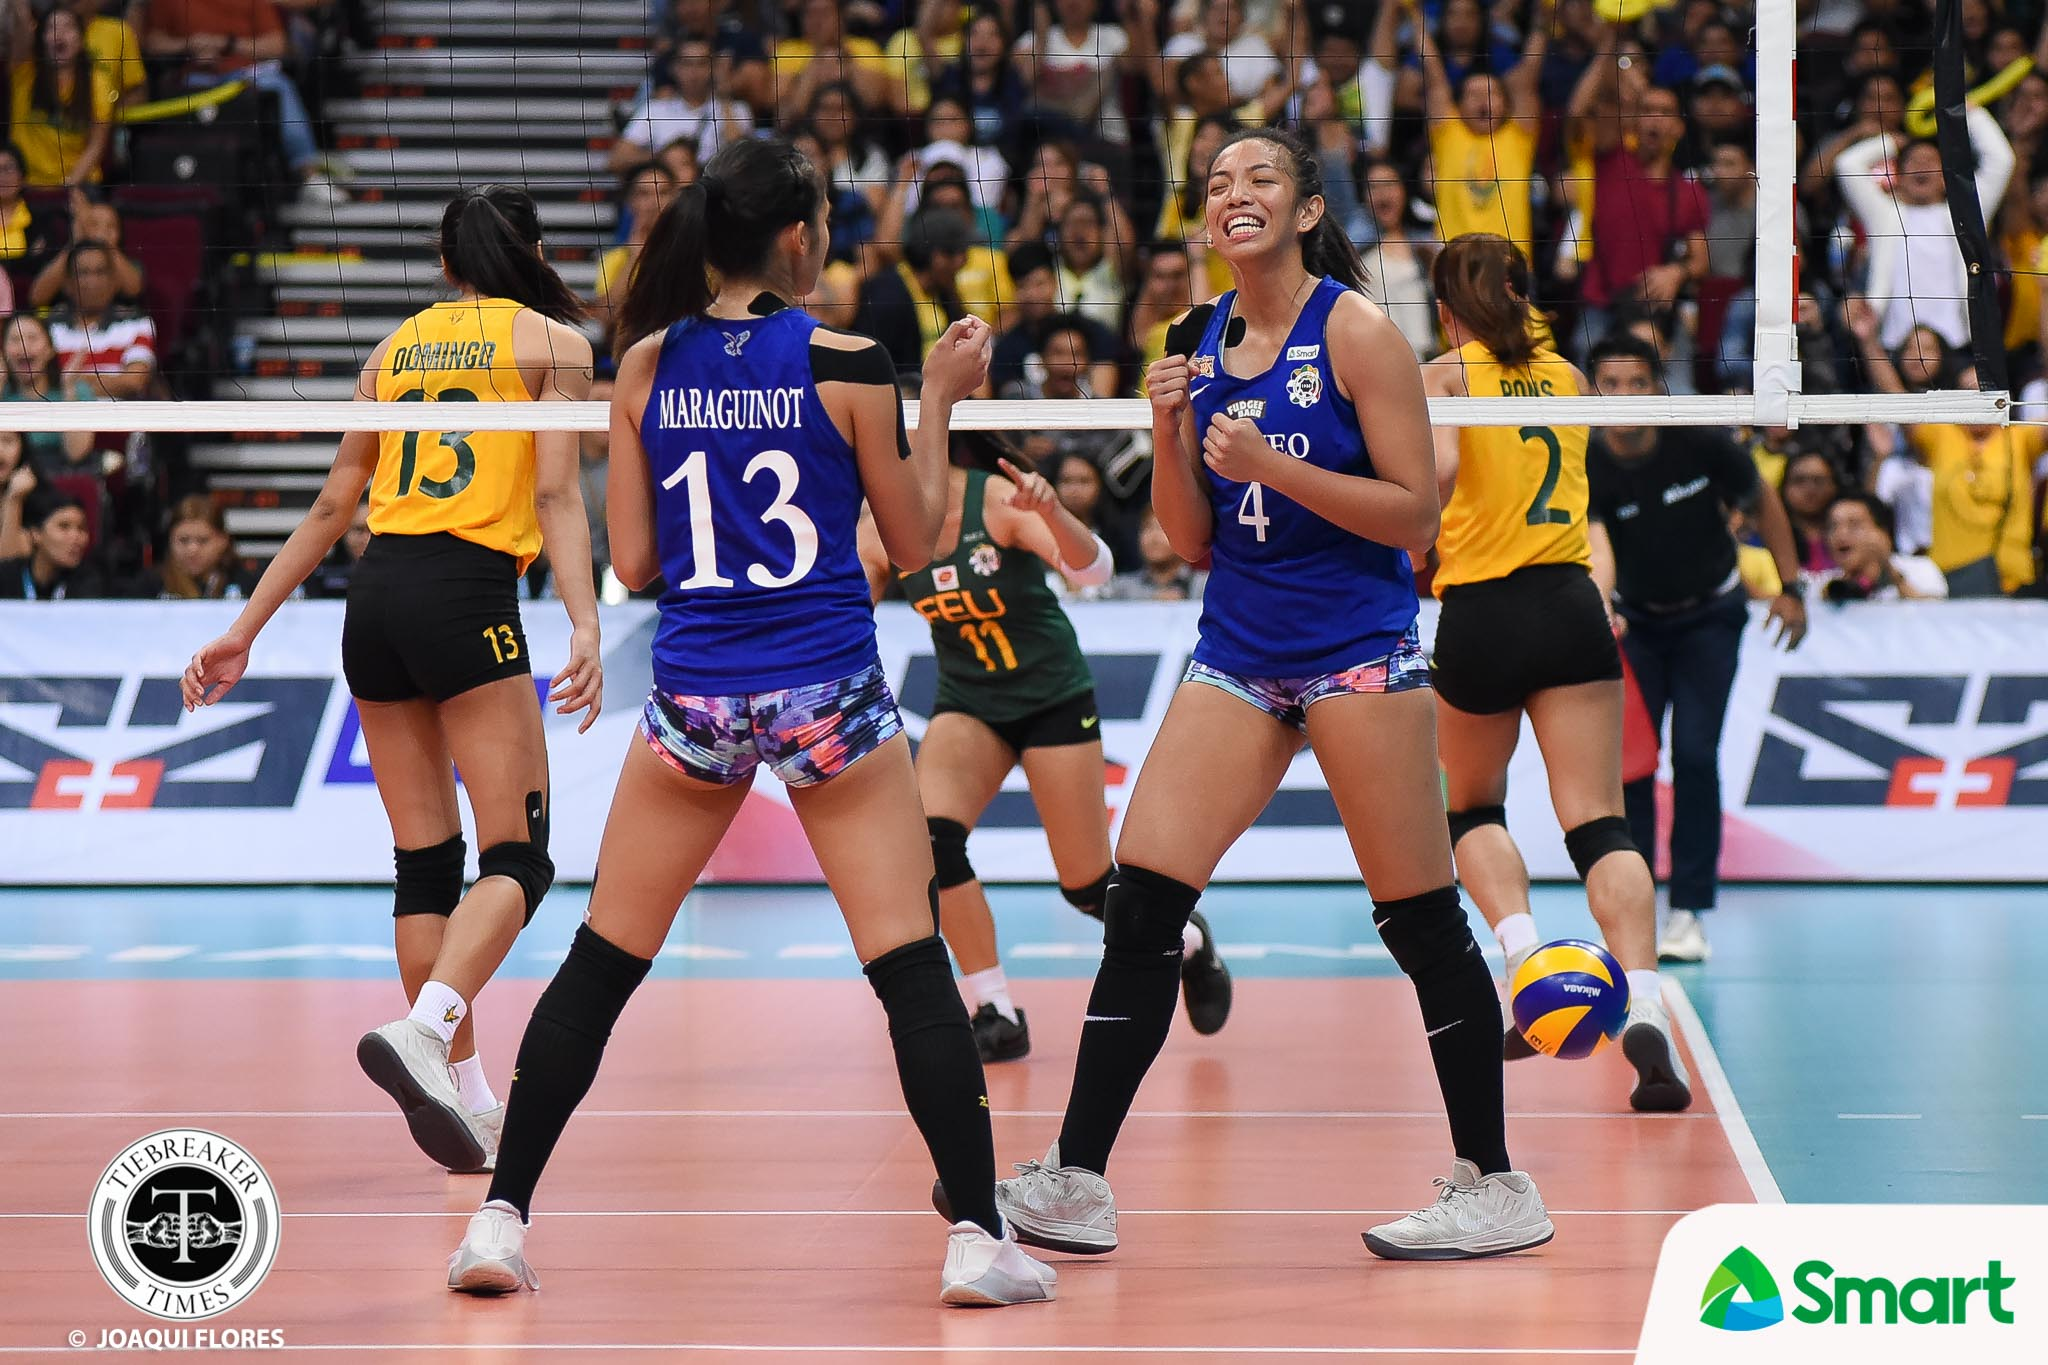 UAAP-80-Volleyball-Final-Four-FEU-vs.-ADMU-Samonte-8262 Jules Samonte bids Ateneo farewell: 'On to the next' ADMU News UAAP Volleyball  - philippine sports news